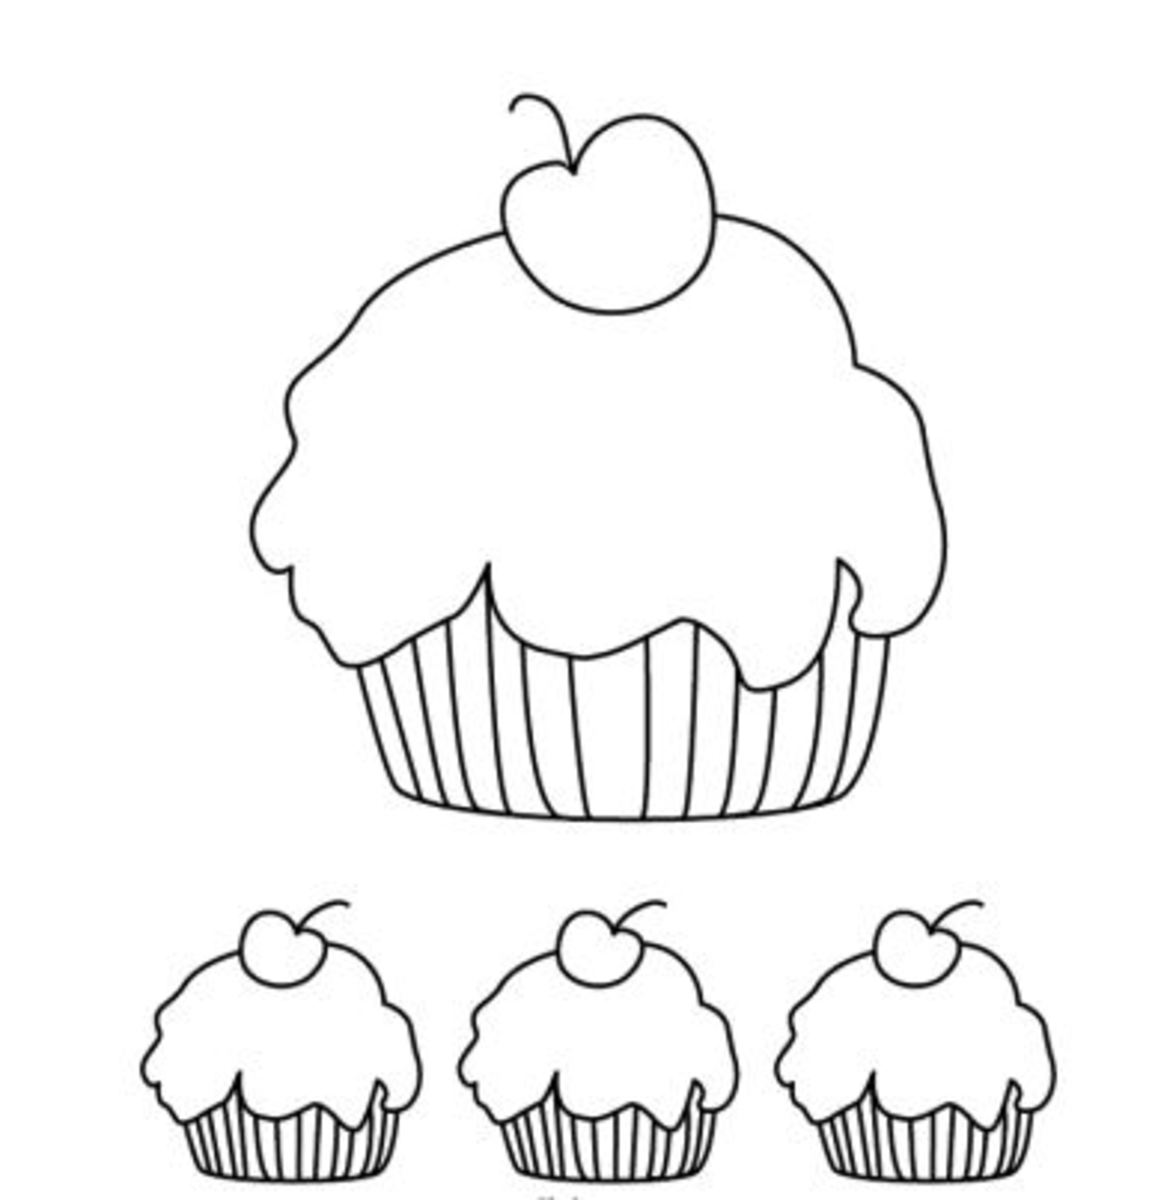 hamburger bun coloring page - photo #15